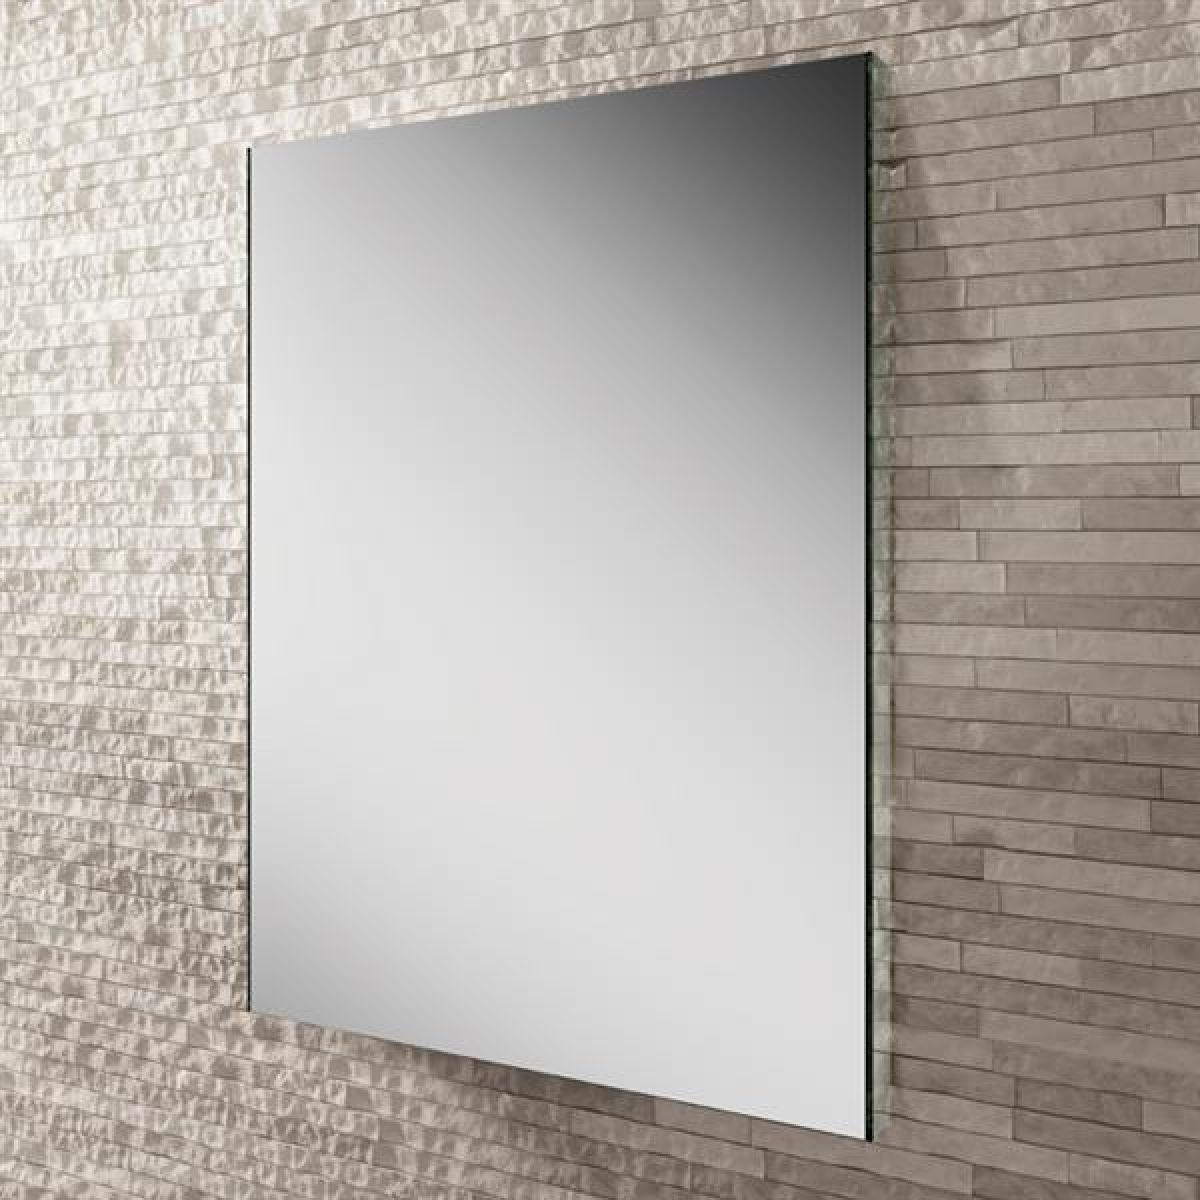 HiB Triumph 60 Heated Bathroom Mirror